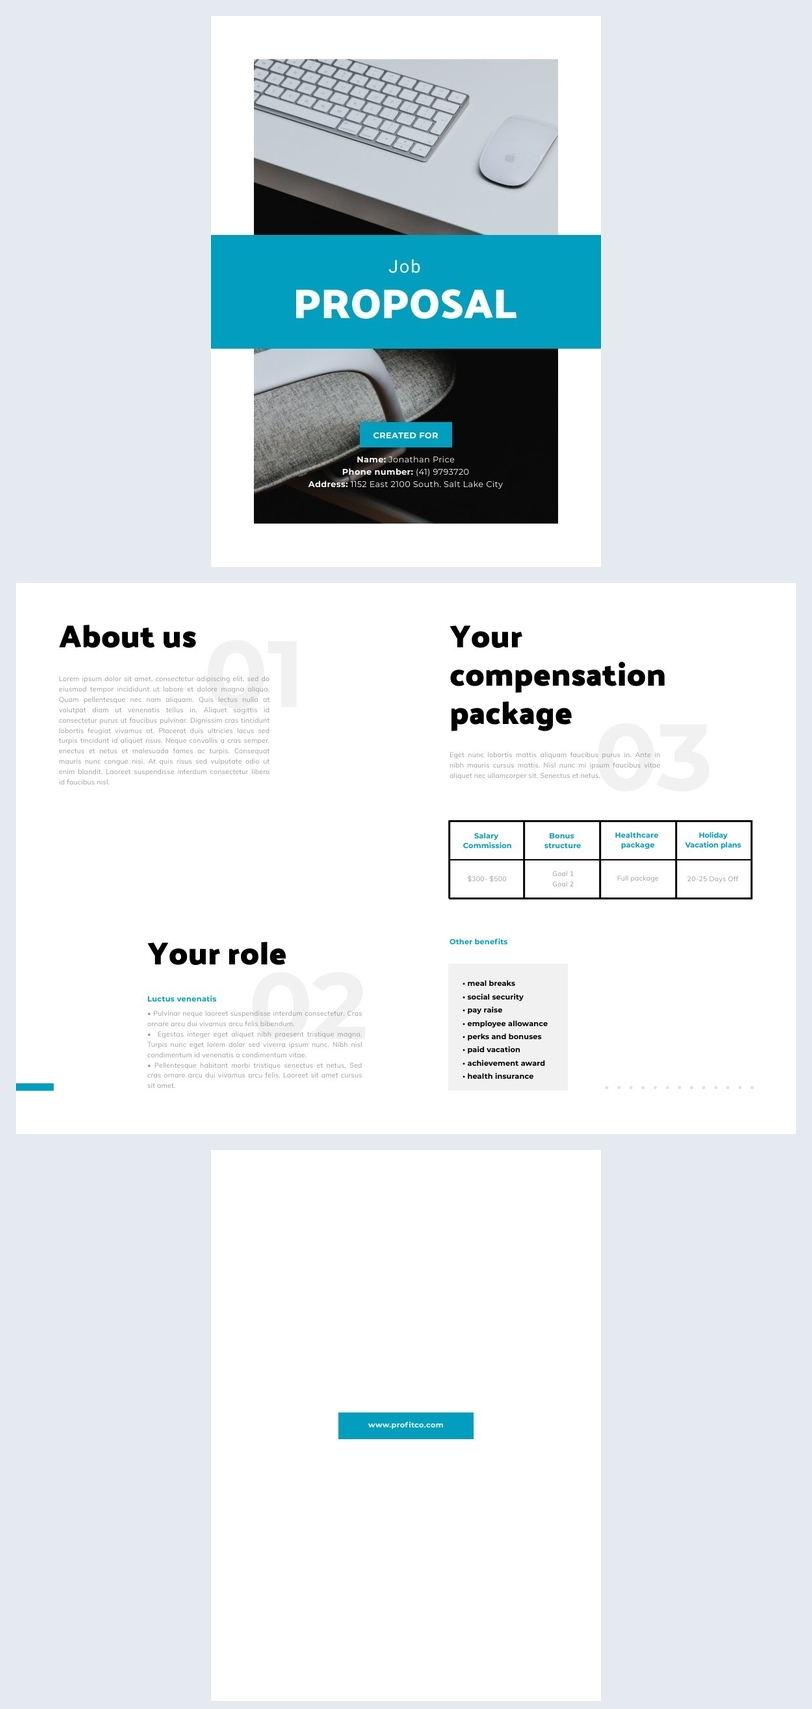 Free Job Proposal Example Design Inspiration